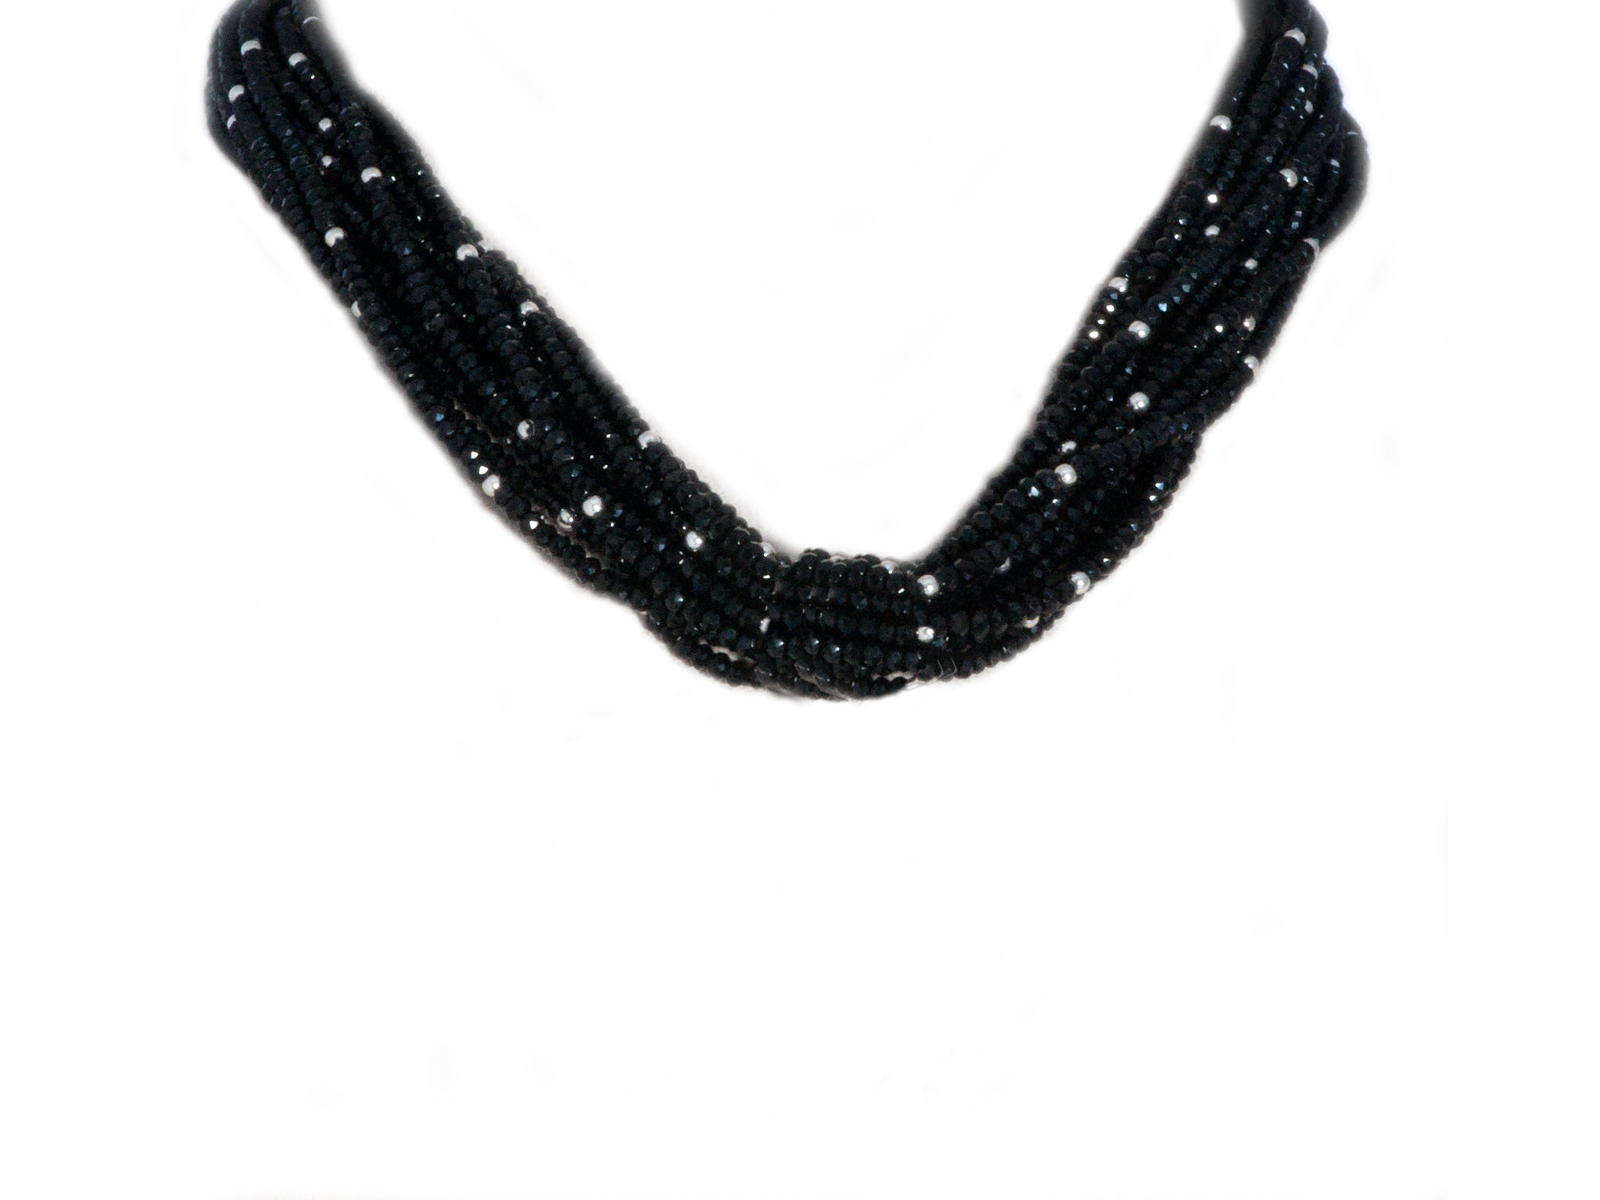 10 Strand Faceted Onyx Bead Necklace